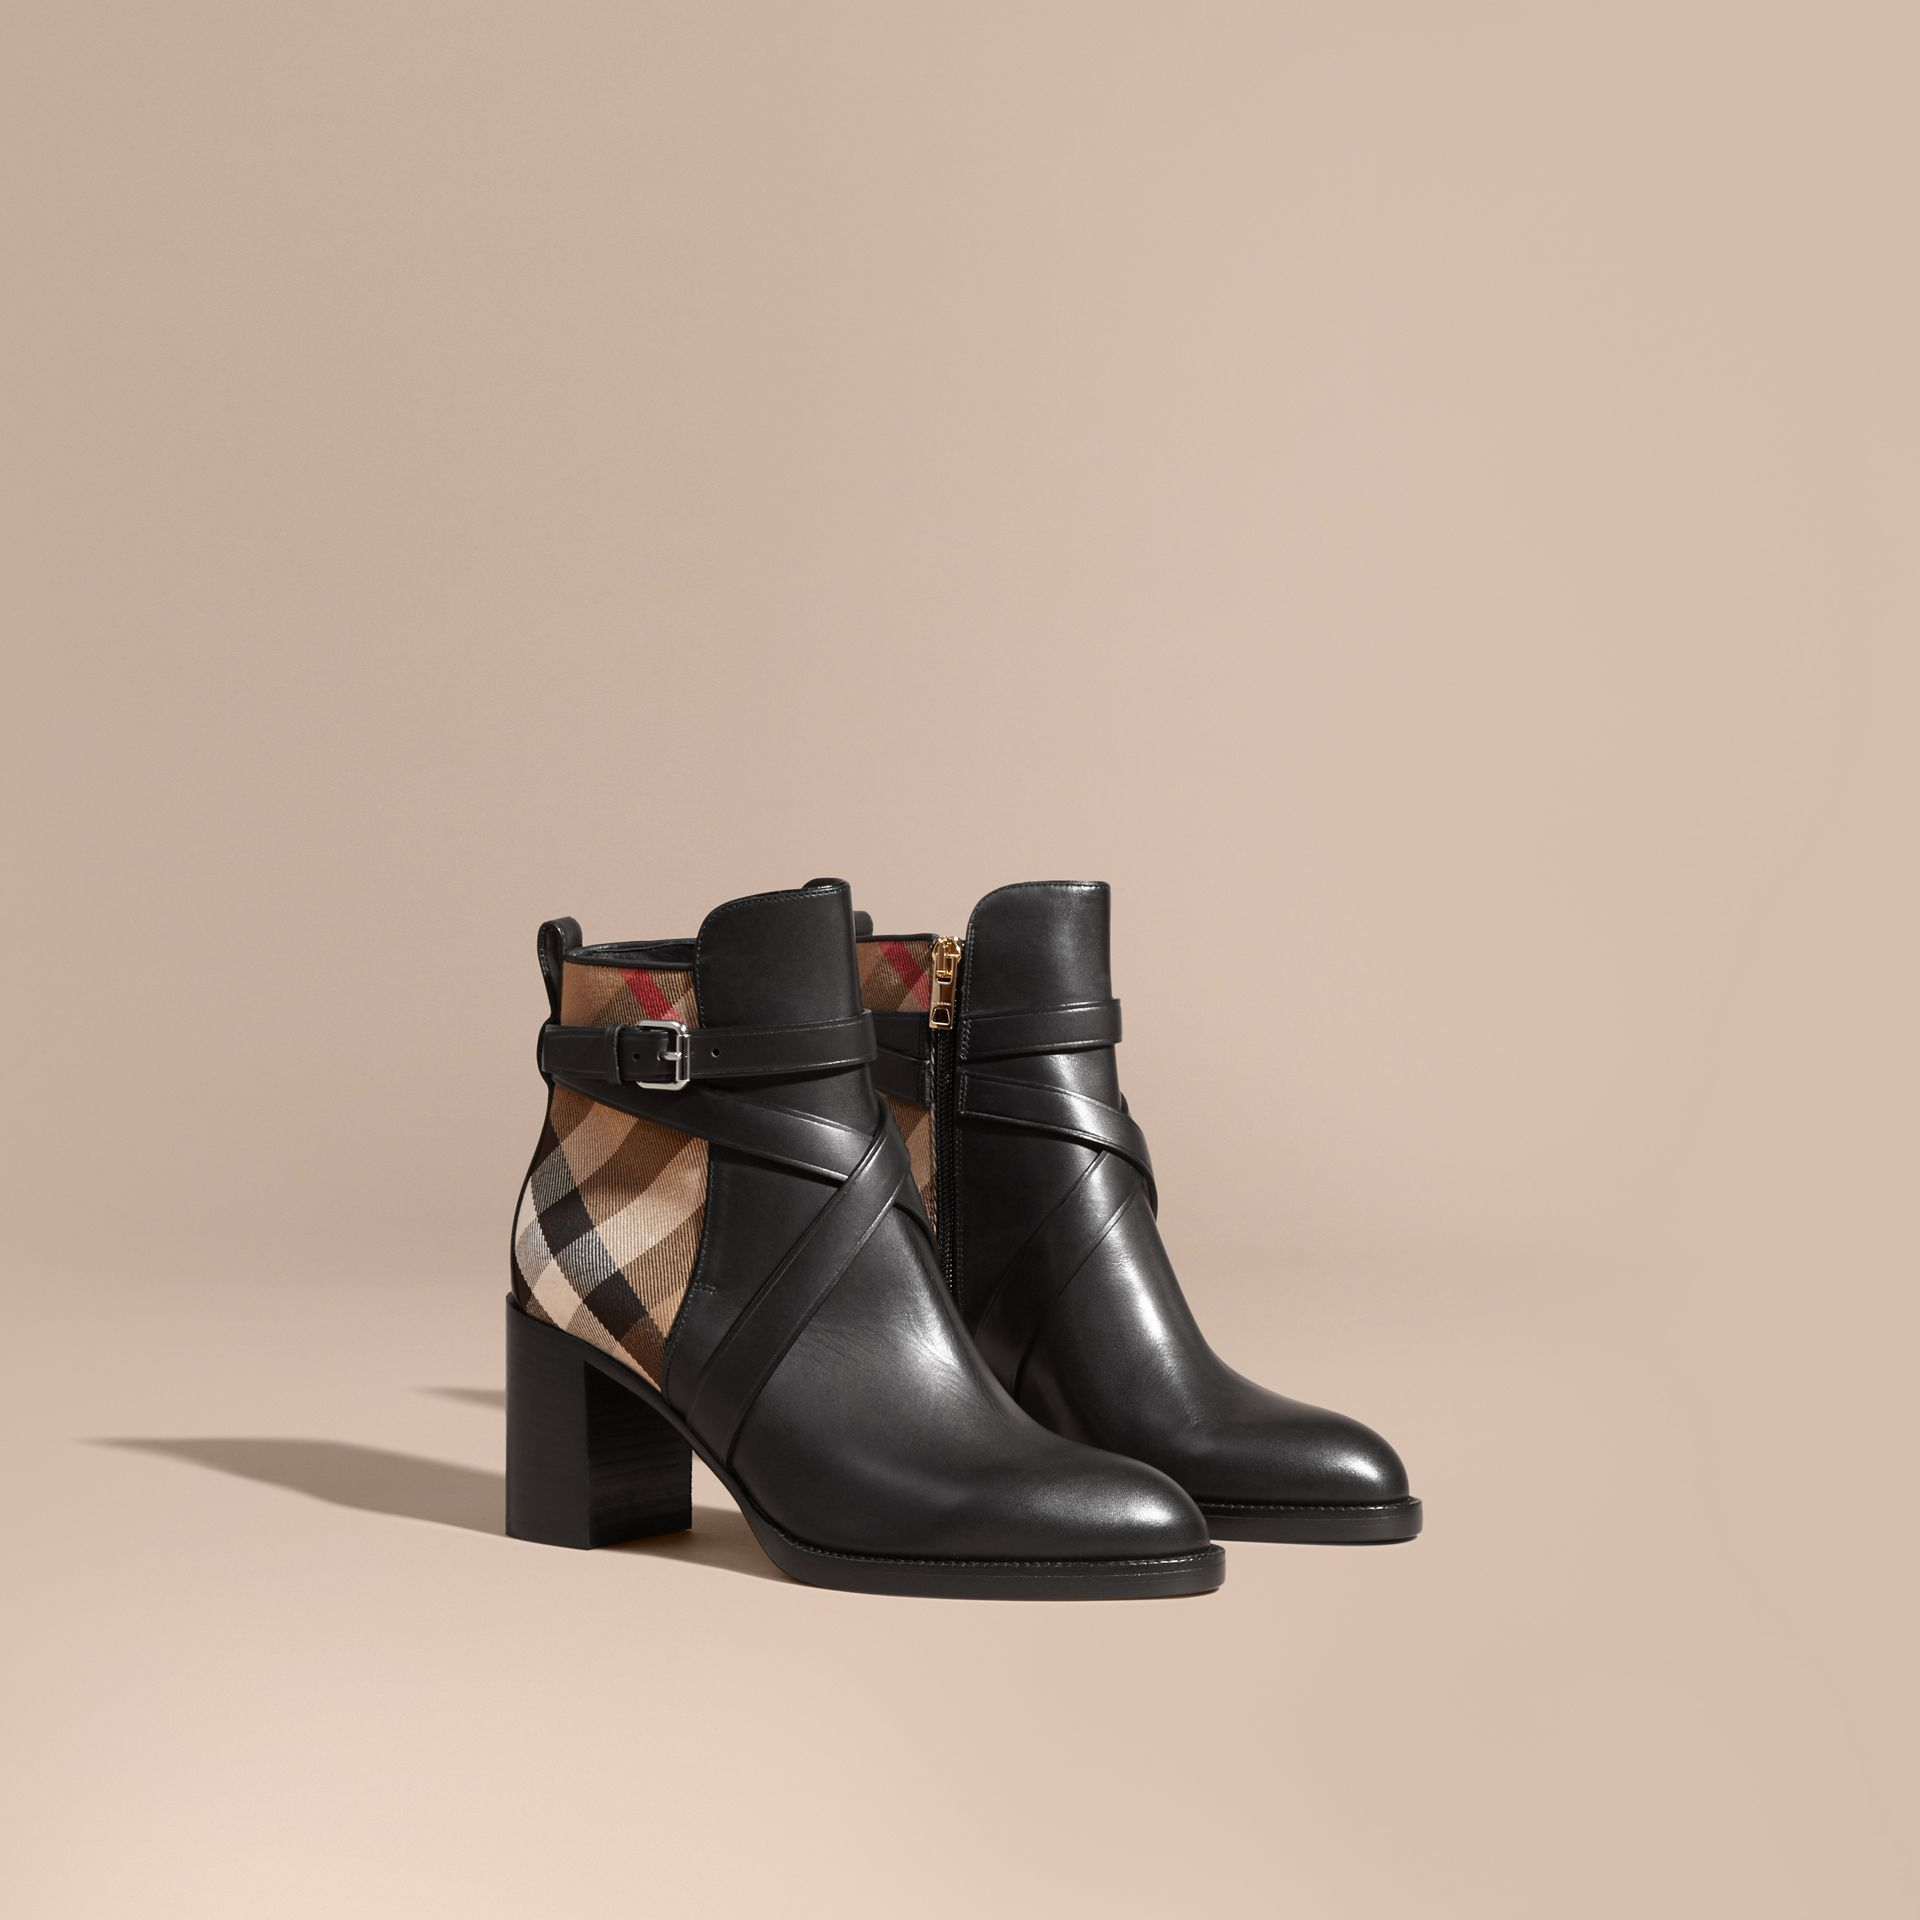 Bottines en cuir et coton House check (Noir) - Femme | Burberry Canada - photo de la galerie 0